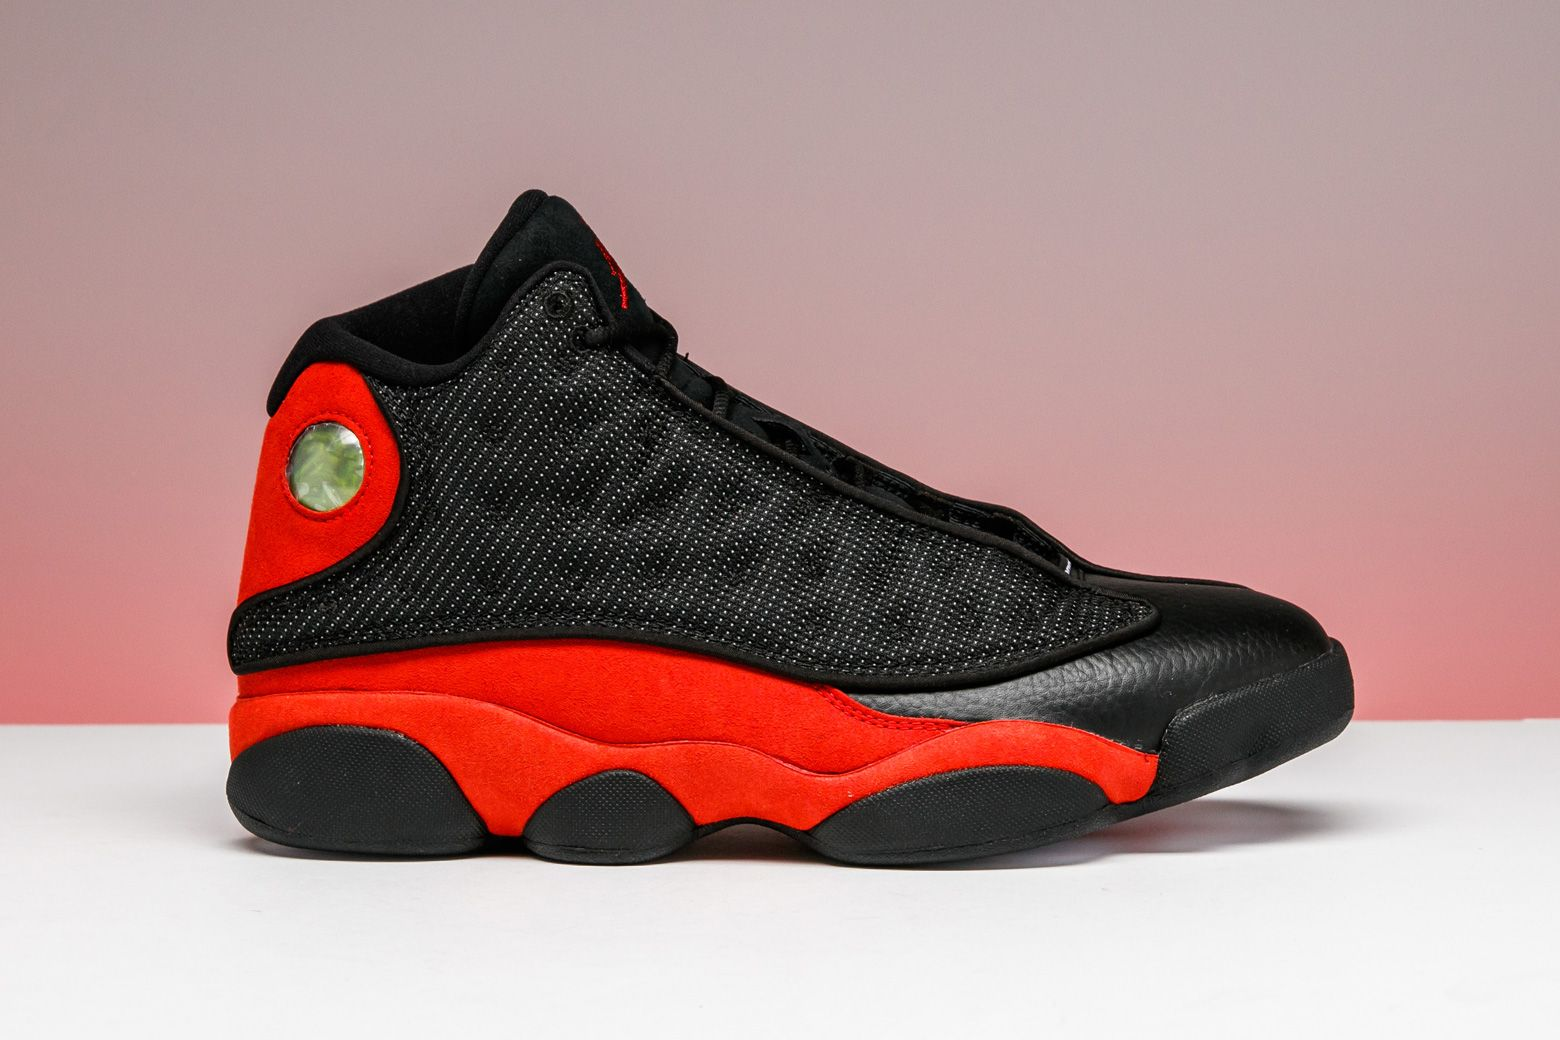 f97bce6681cc5b SG EARLY ACCESS  The 2017 Air Jordan 13